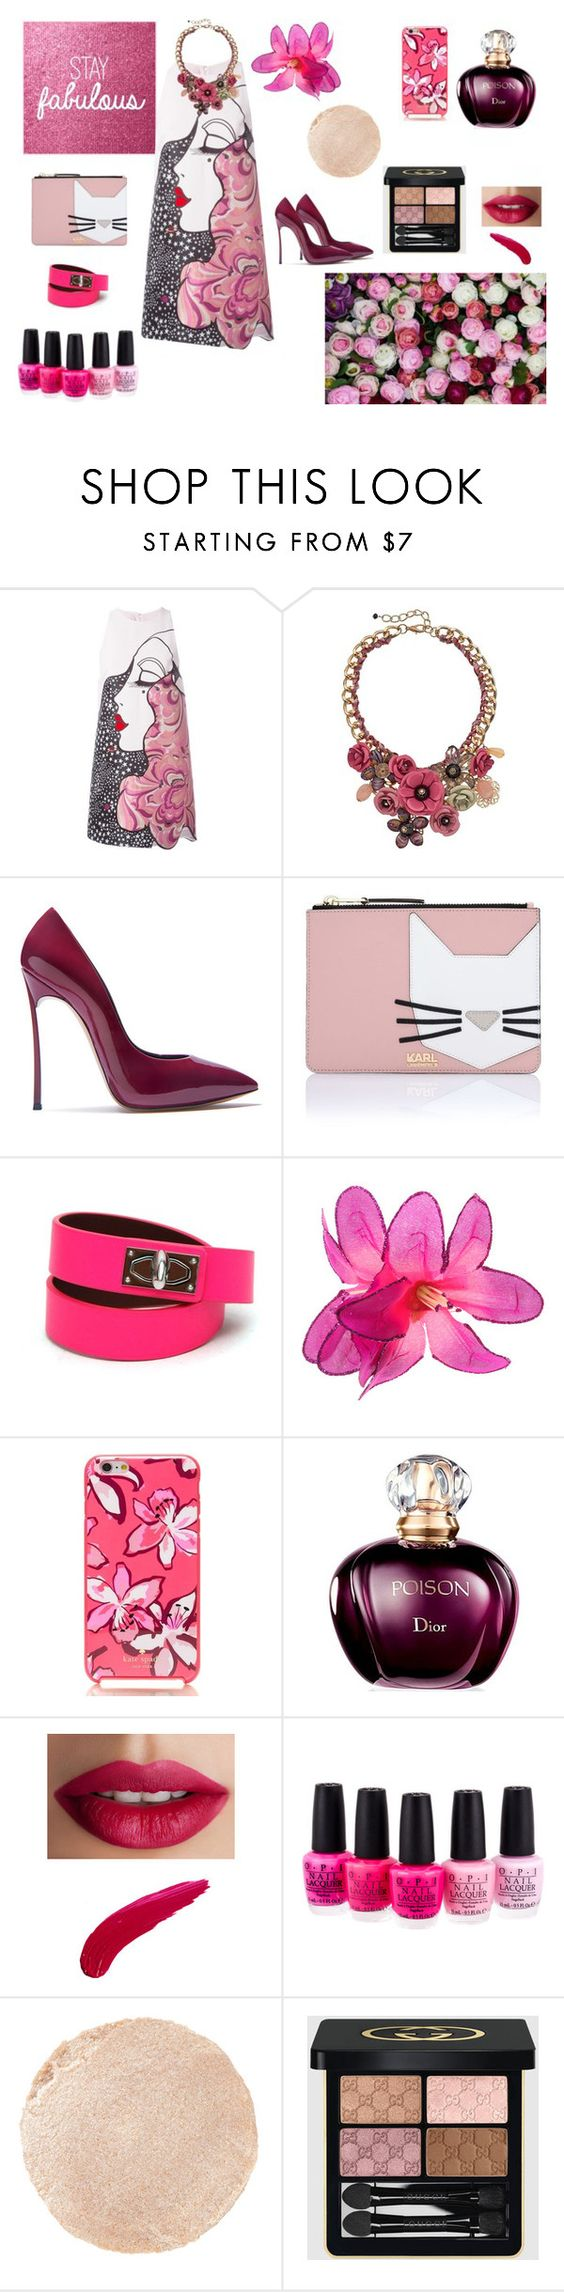 """Stay fabulous"" by maria-tamarindo on Polyvore featuring Giamba, Loli Bijoux, Casadei, Karl Lagerfeld, Givenchy, Kate Spade, TheBalm, OPI, Wander Beauty and Gucci"